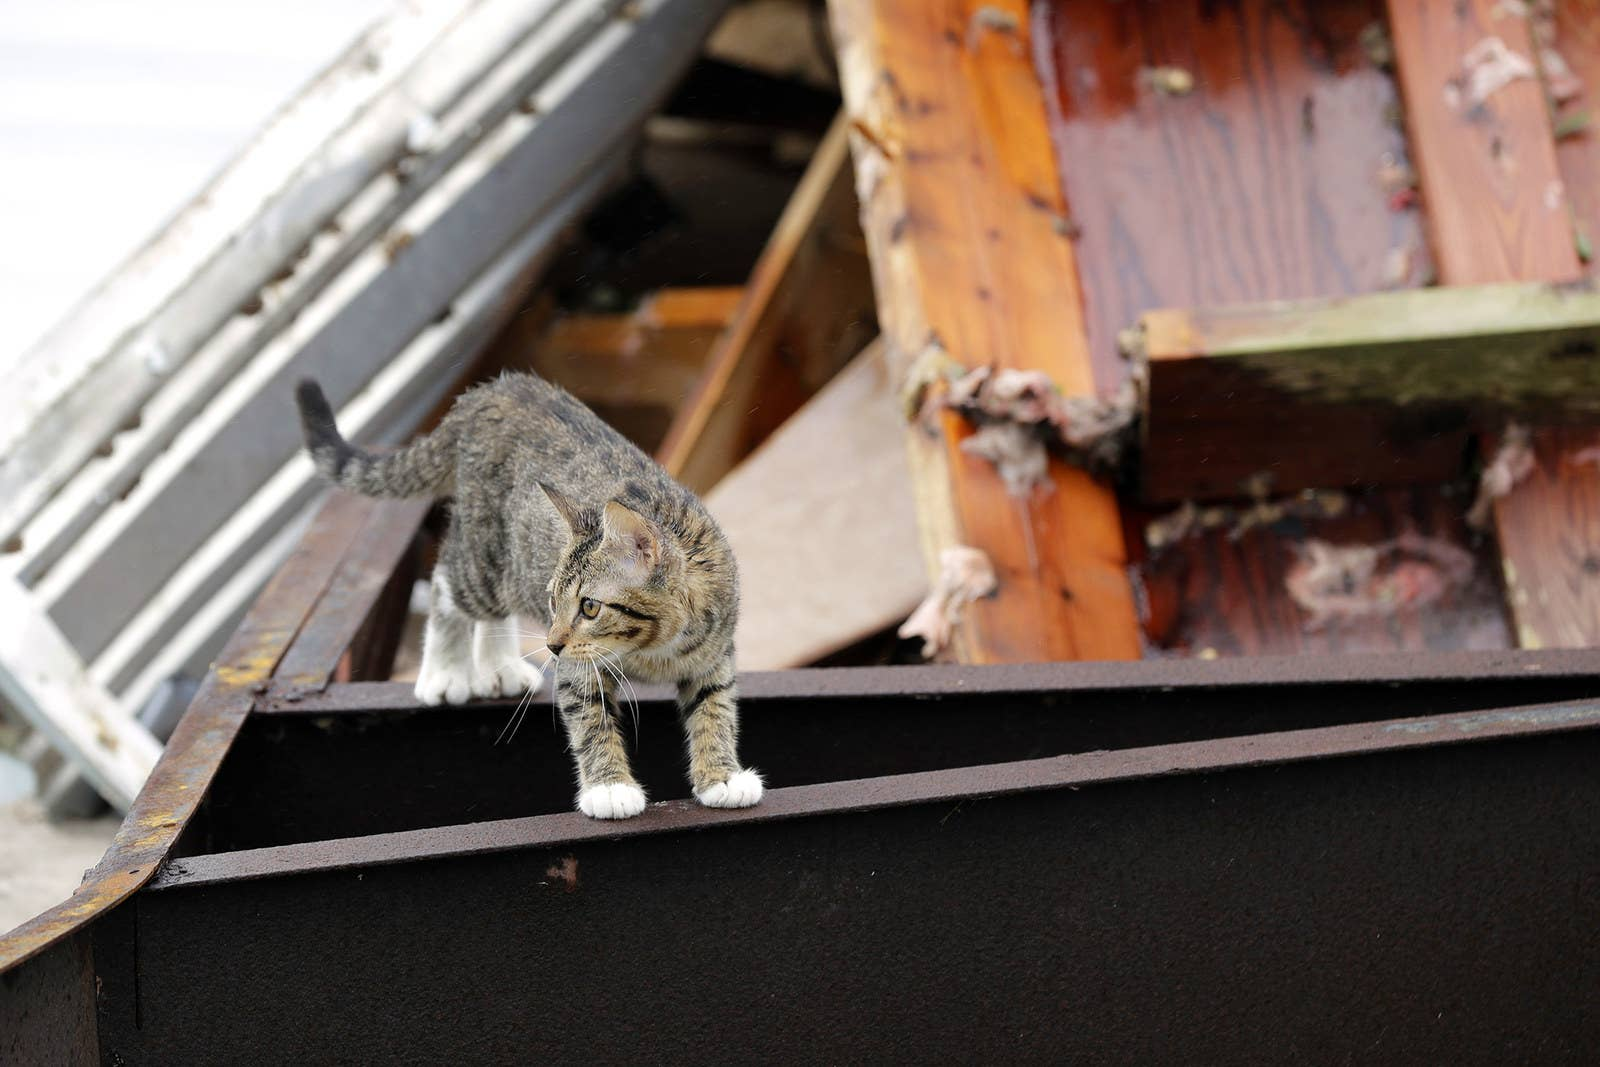 A cat wanders through debris on Aug. 28 in Rockport, Texas. A neighbor took in the cat and provided it with food and water.